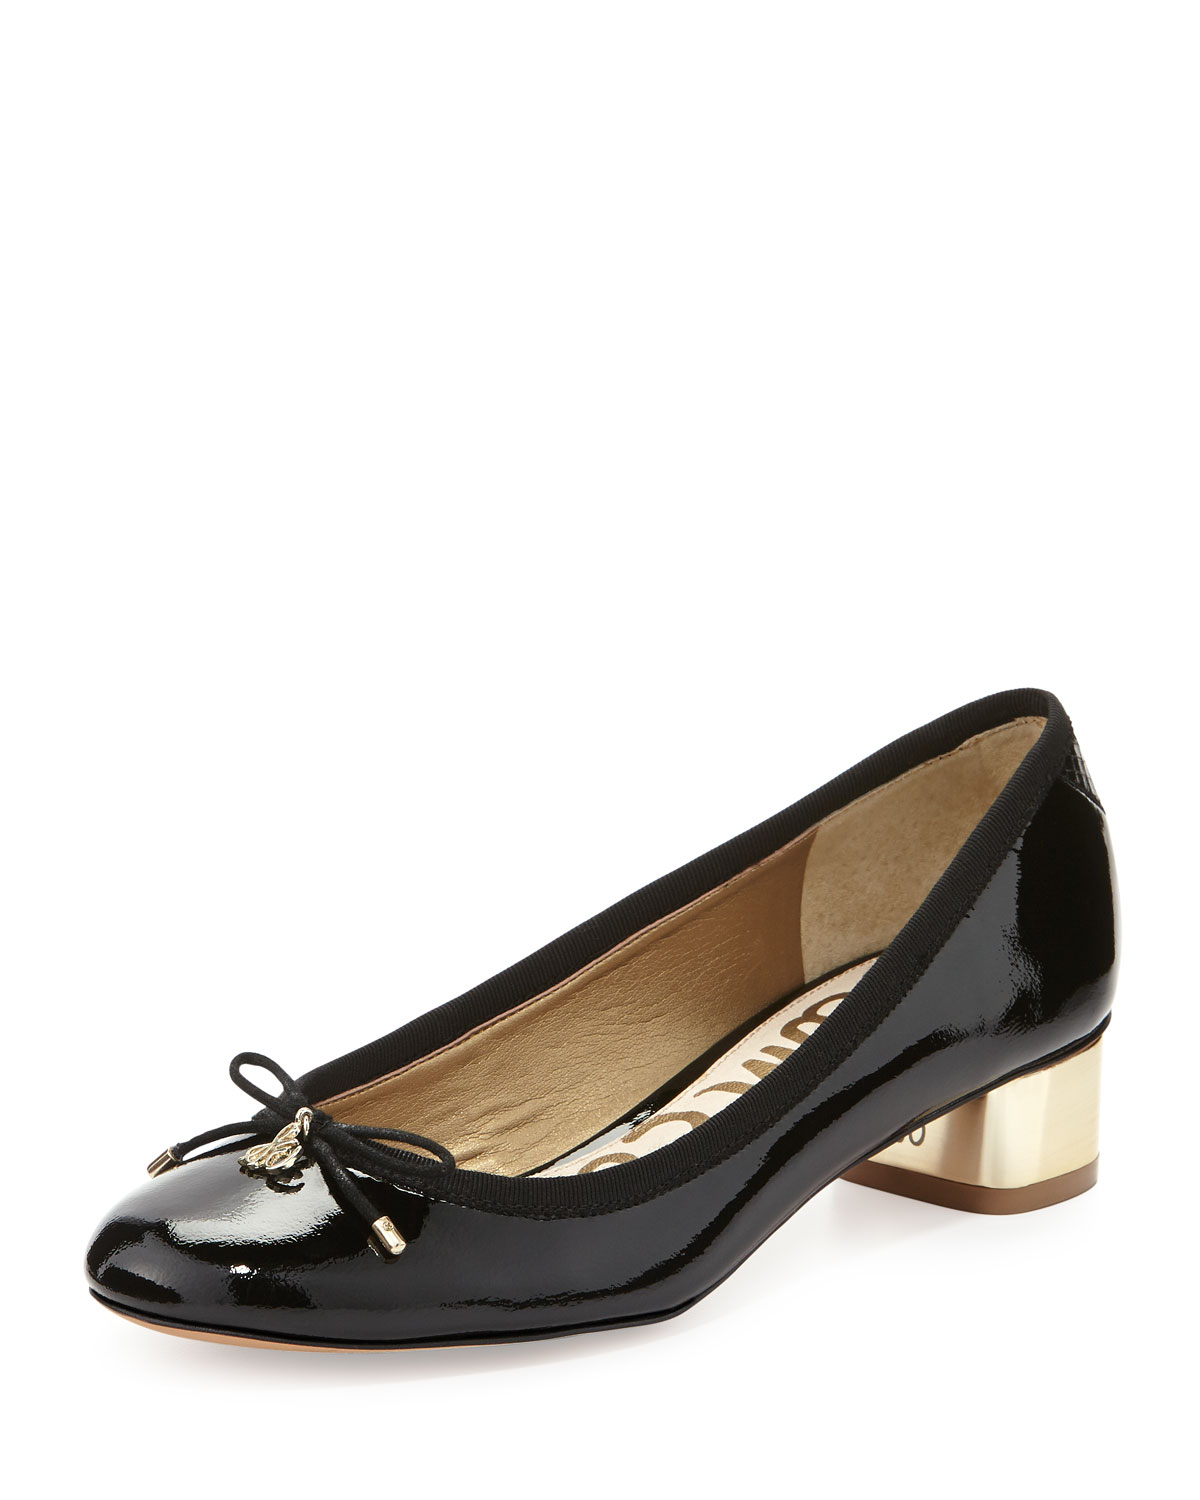 Black Leather Driving Shoes With Bow